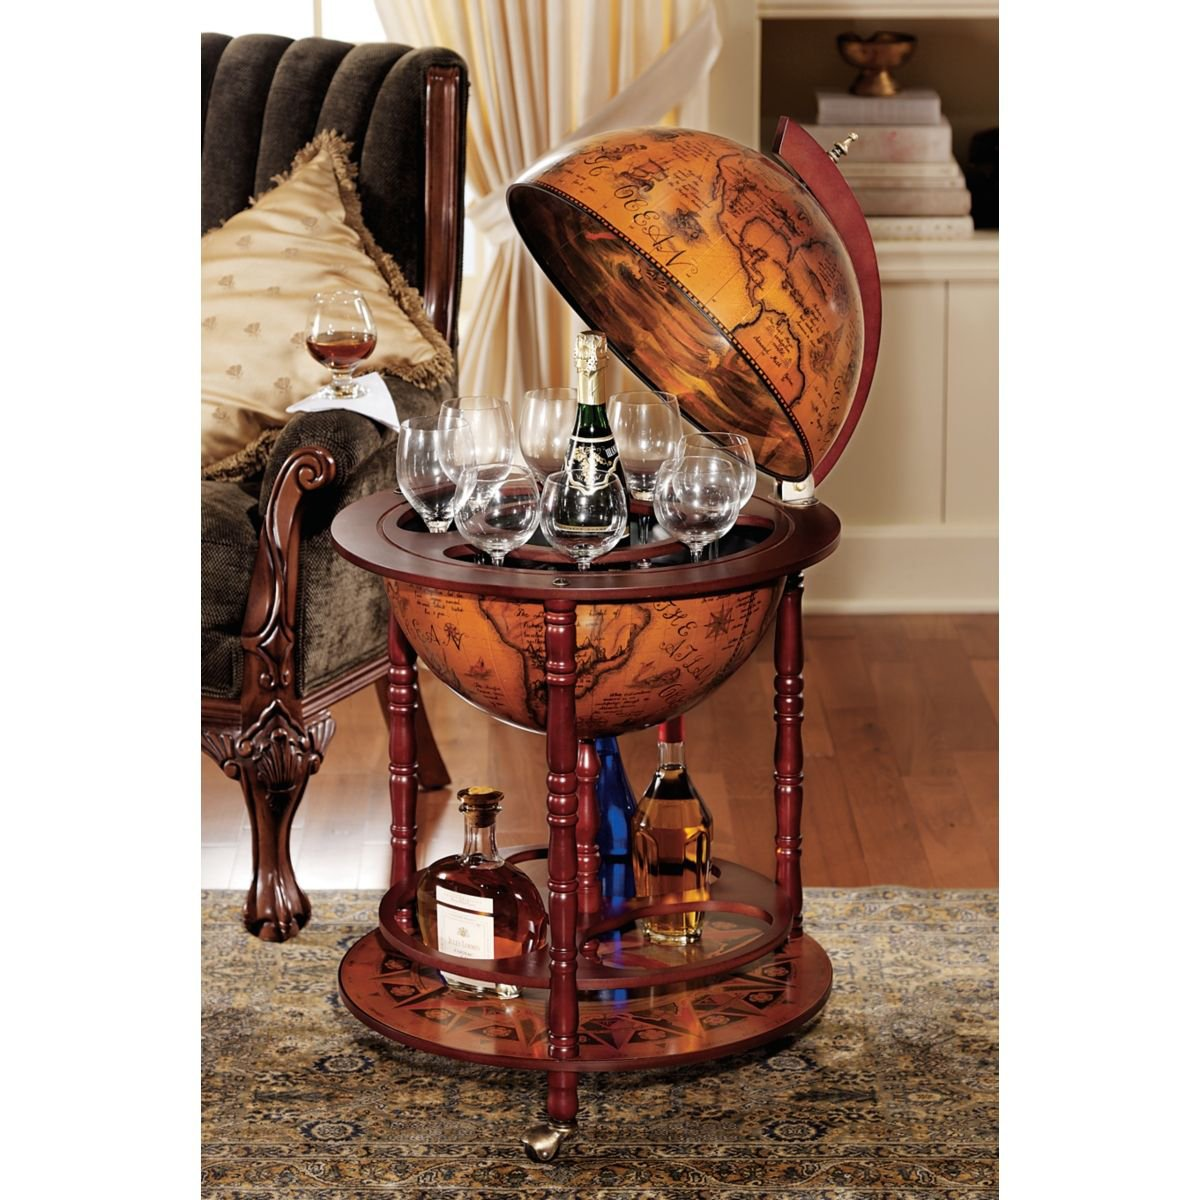 hidden bar furniture. Design Toscano Sixteenth-Century Italian Replica Globe Bar: Amazon.ca: Home \u0026 Kitchen Hidden Bar Furniture C